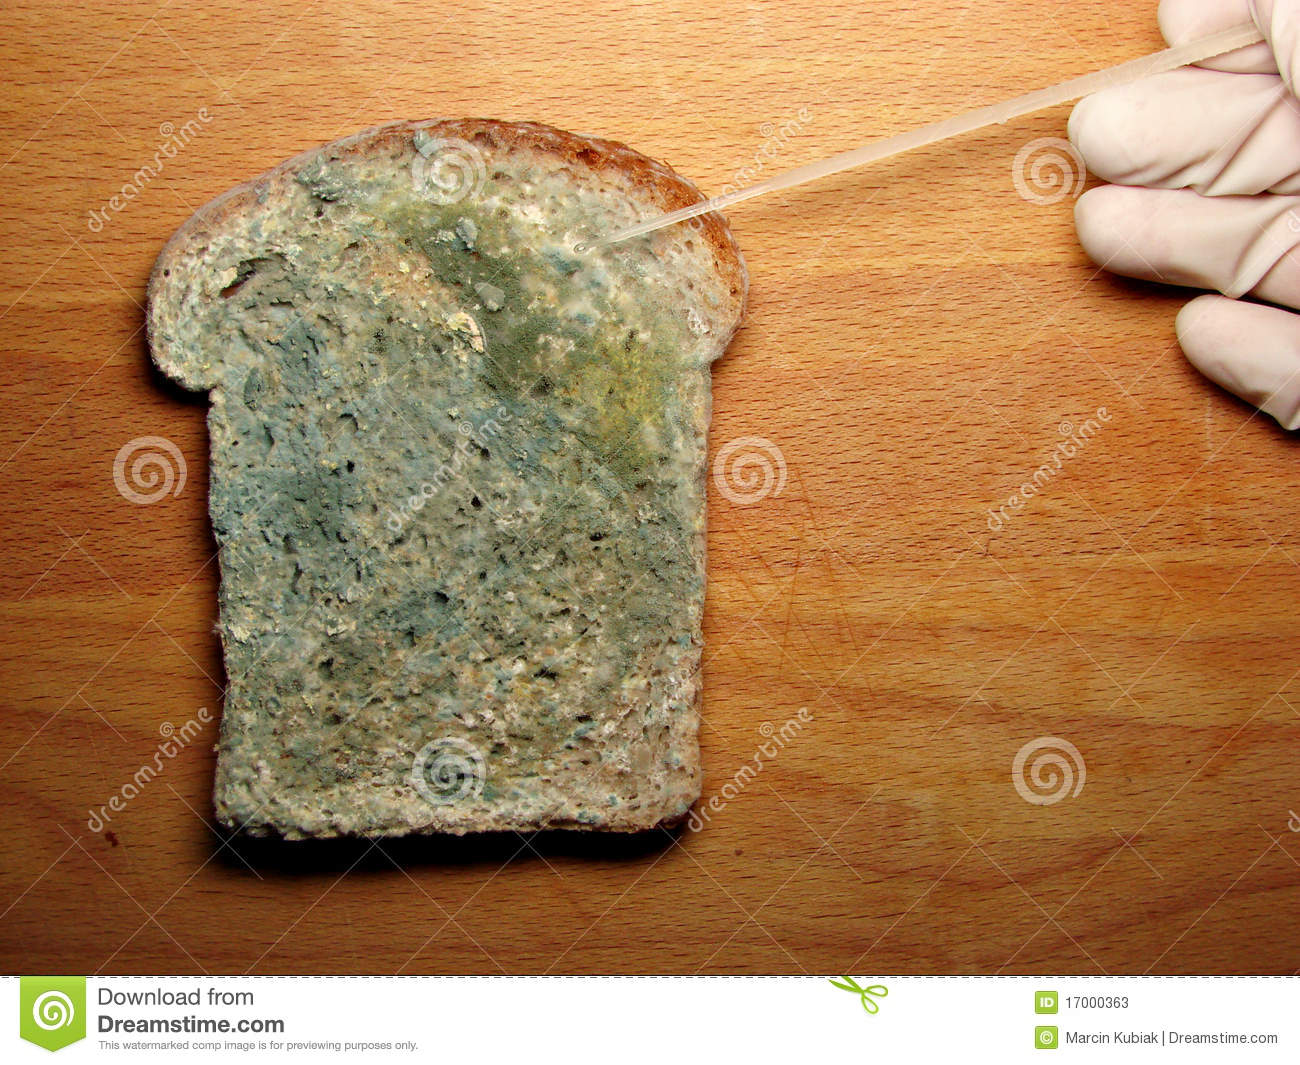 literature review on bread mold Mold health issues are potentially harmful effects of molds molds (us usage british english moulds) are ubiquitous in the biosphere, and mold spores are a common component of household and workplace dust the united states centers for disease control and prevention reported in its june 2006 report, 'mold prevention strategies and possible health effects in the aftermath of hurricanes and.